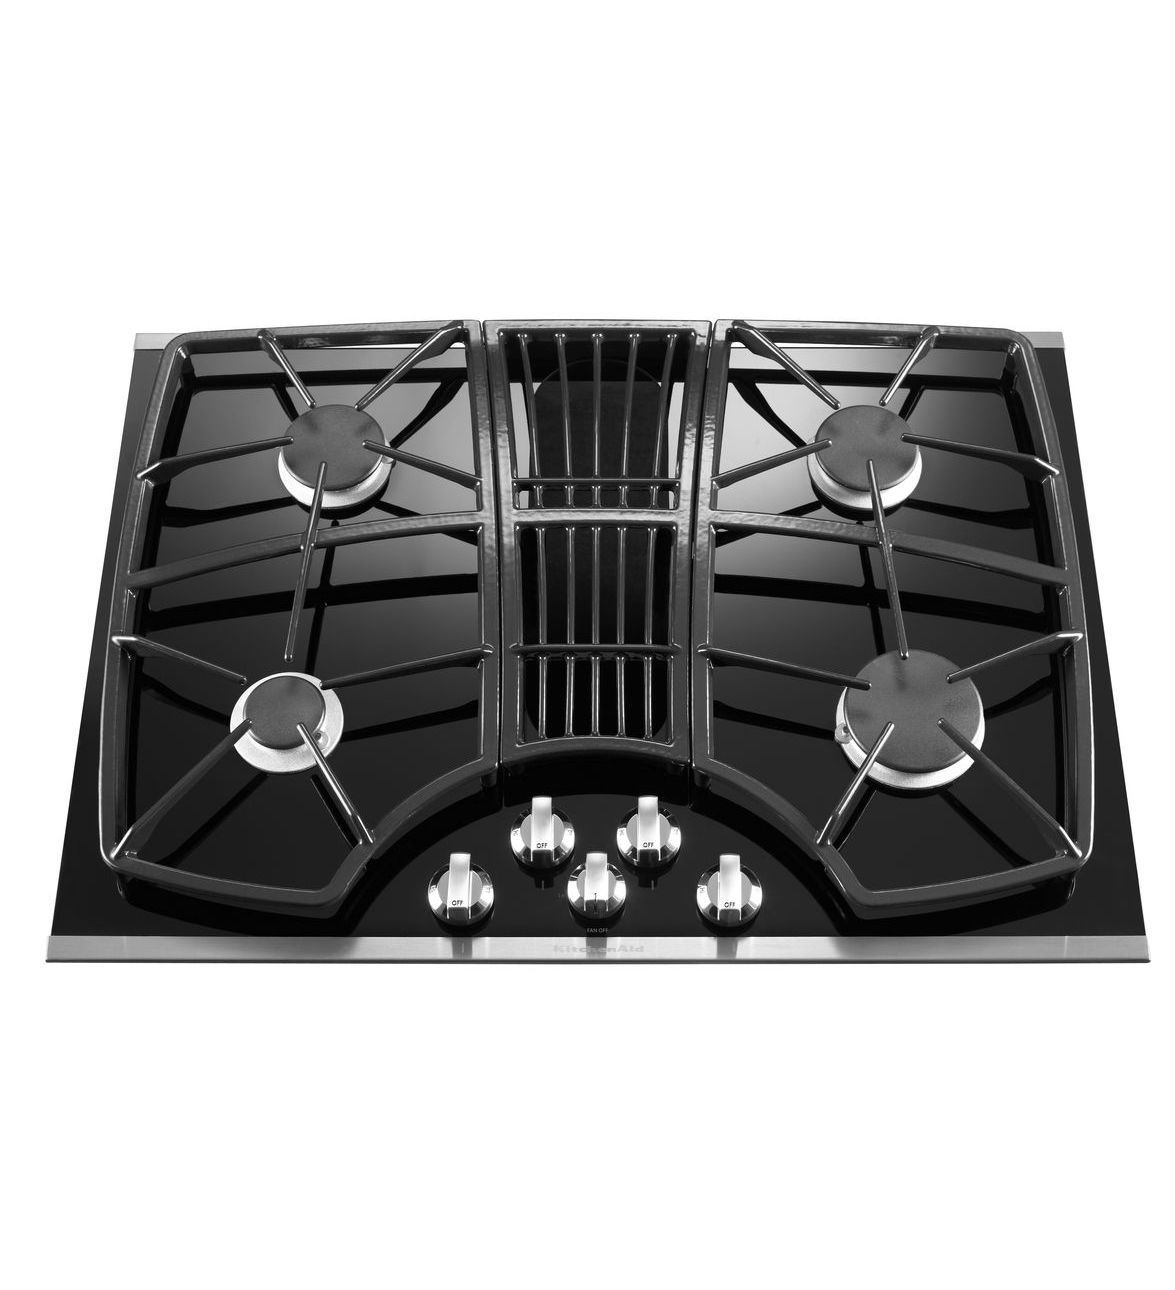 Kitchenaid 30 Inch 4 Burner Downdraft Gas Cooktop Architect Series Ii Kgcd807xss Stainless Steel Gas Cooktop Kitchen Aid Kitchen Aid Appliances